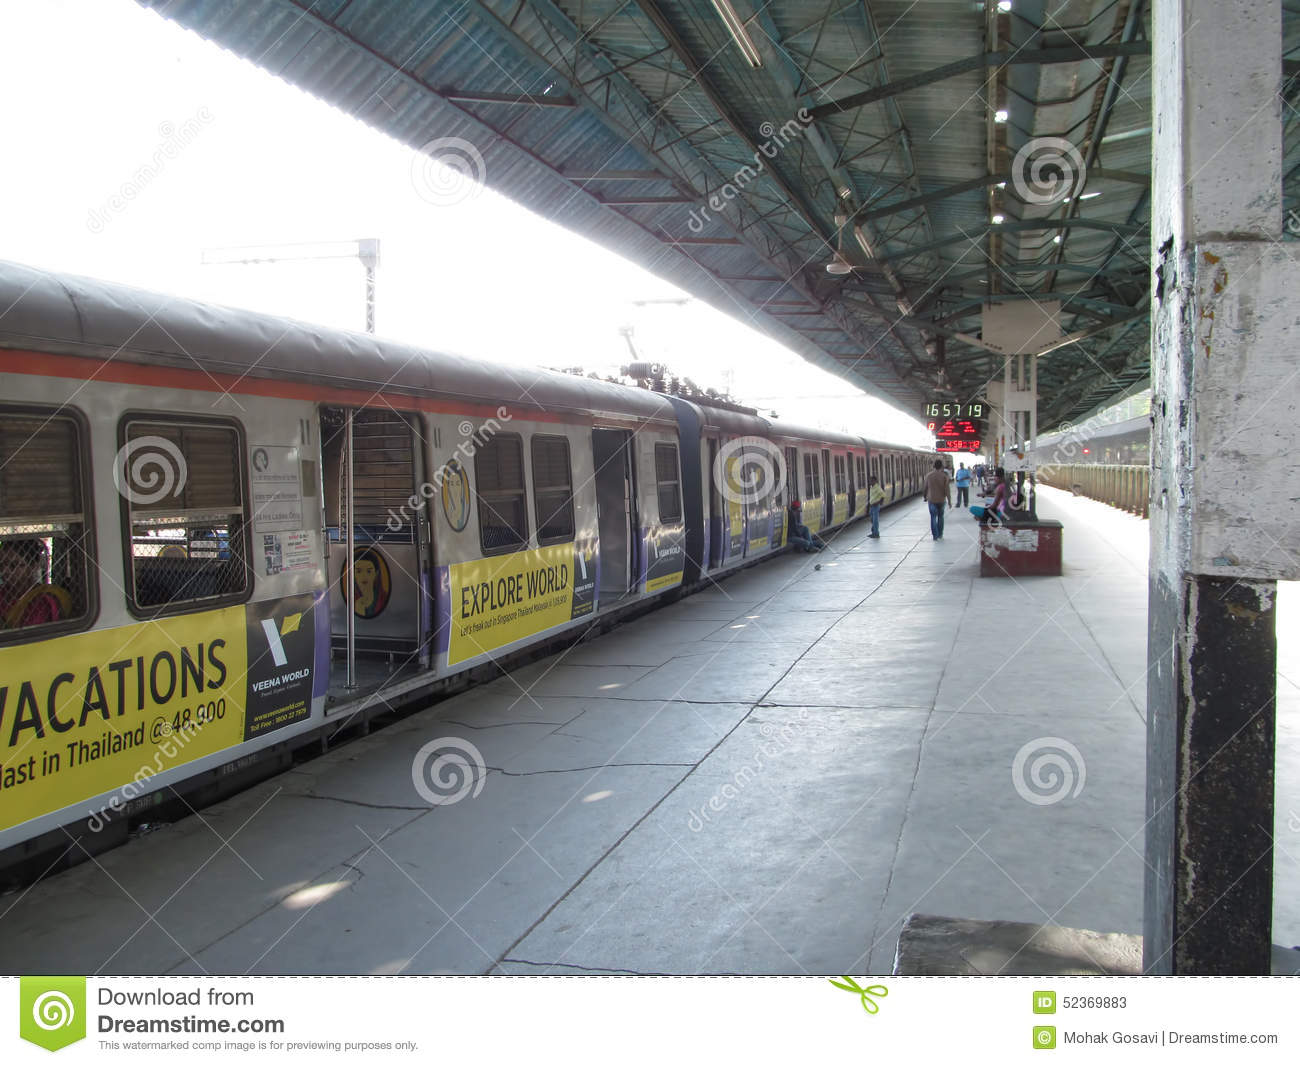 essay on mumbai local train A step by step guide with everything you need to know to conquer the mumbai  local trains.